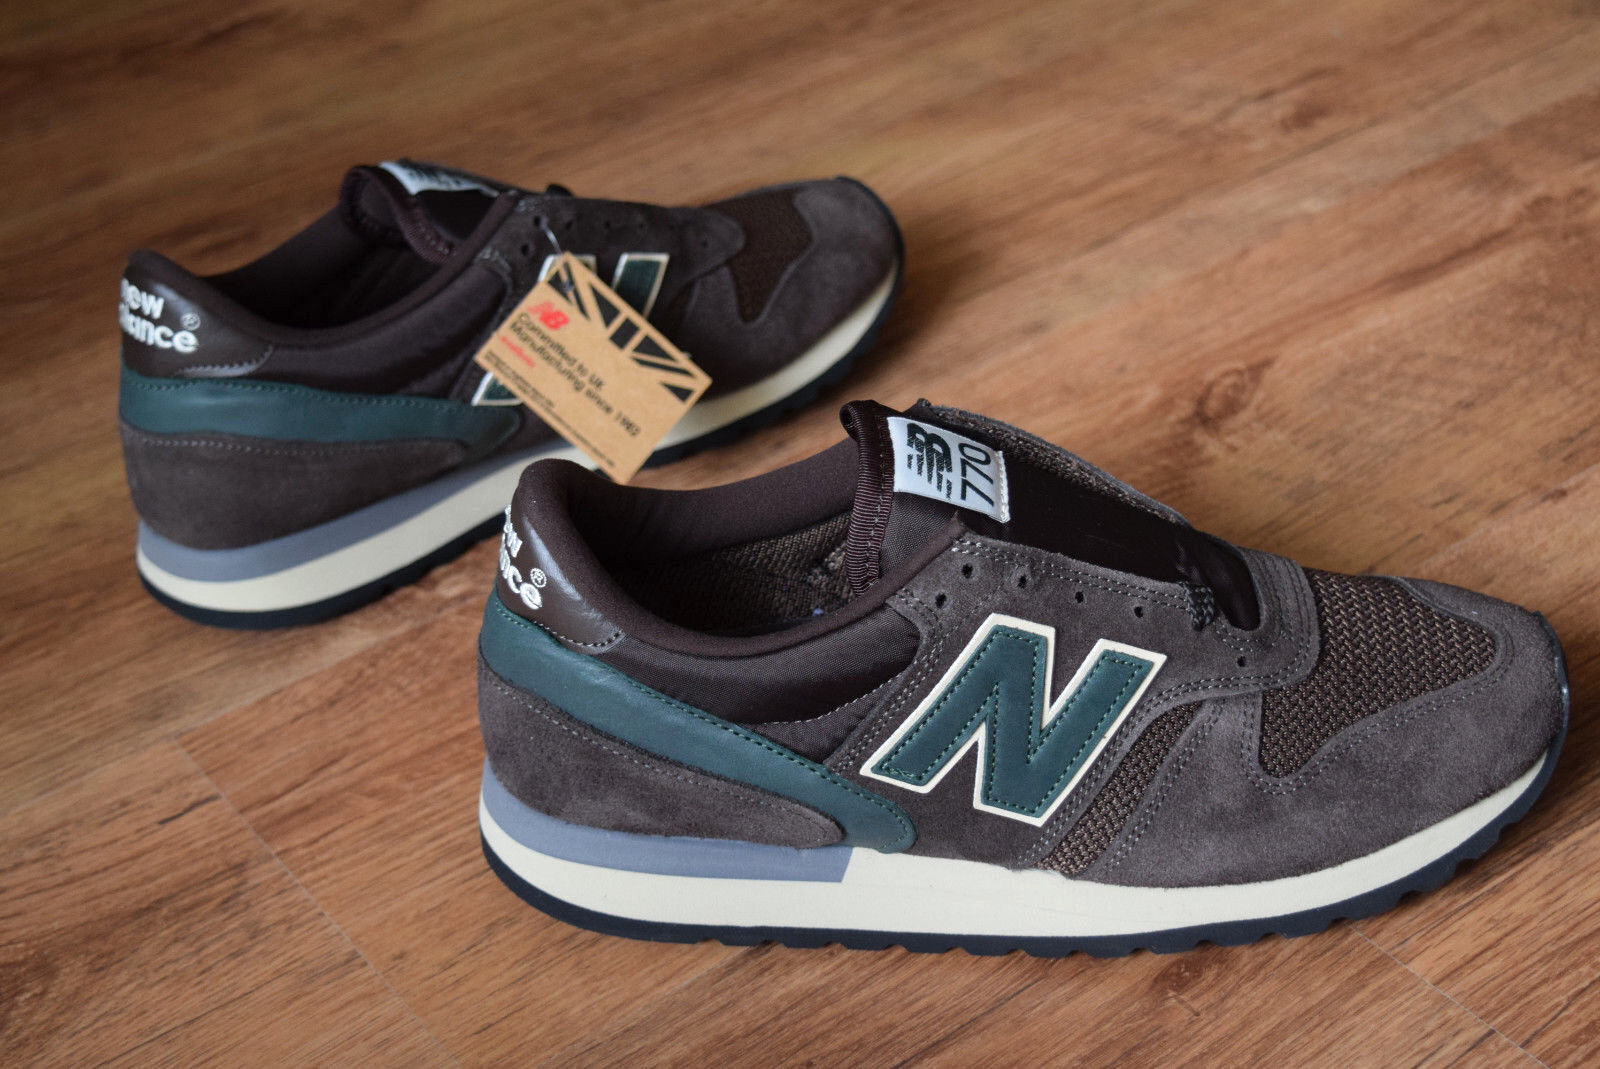 New Balance M 770 AET 40 41 42 42,5 43 44 45 46 Made in England UK Classic 576